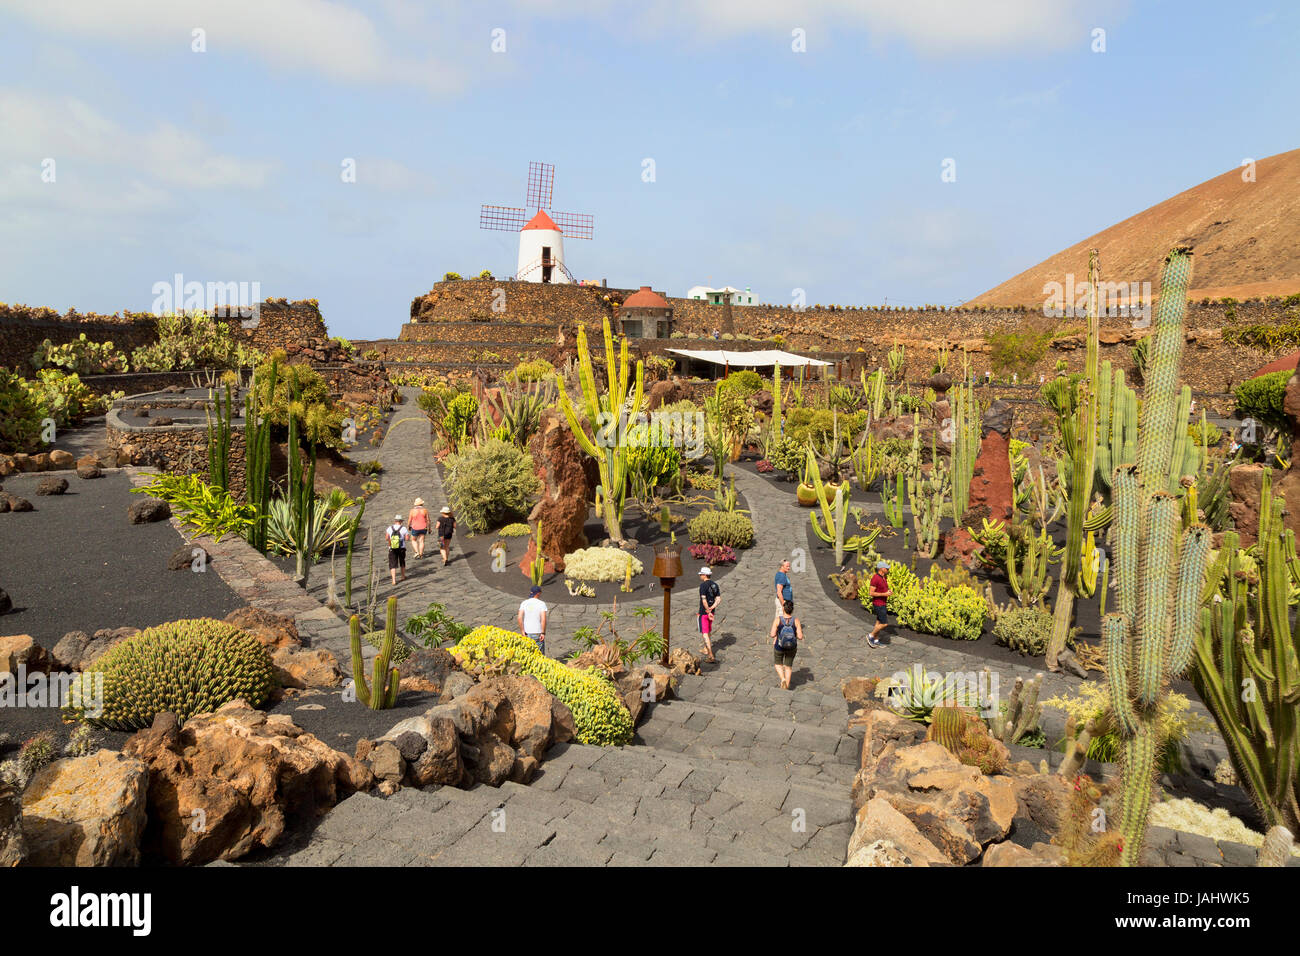 lanzarote cactus garden or jardin de cactus designed by local artist cesar manrique lanzarote canary islands europe